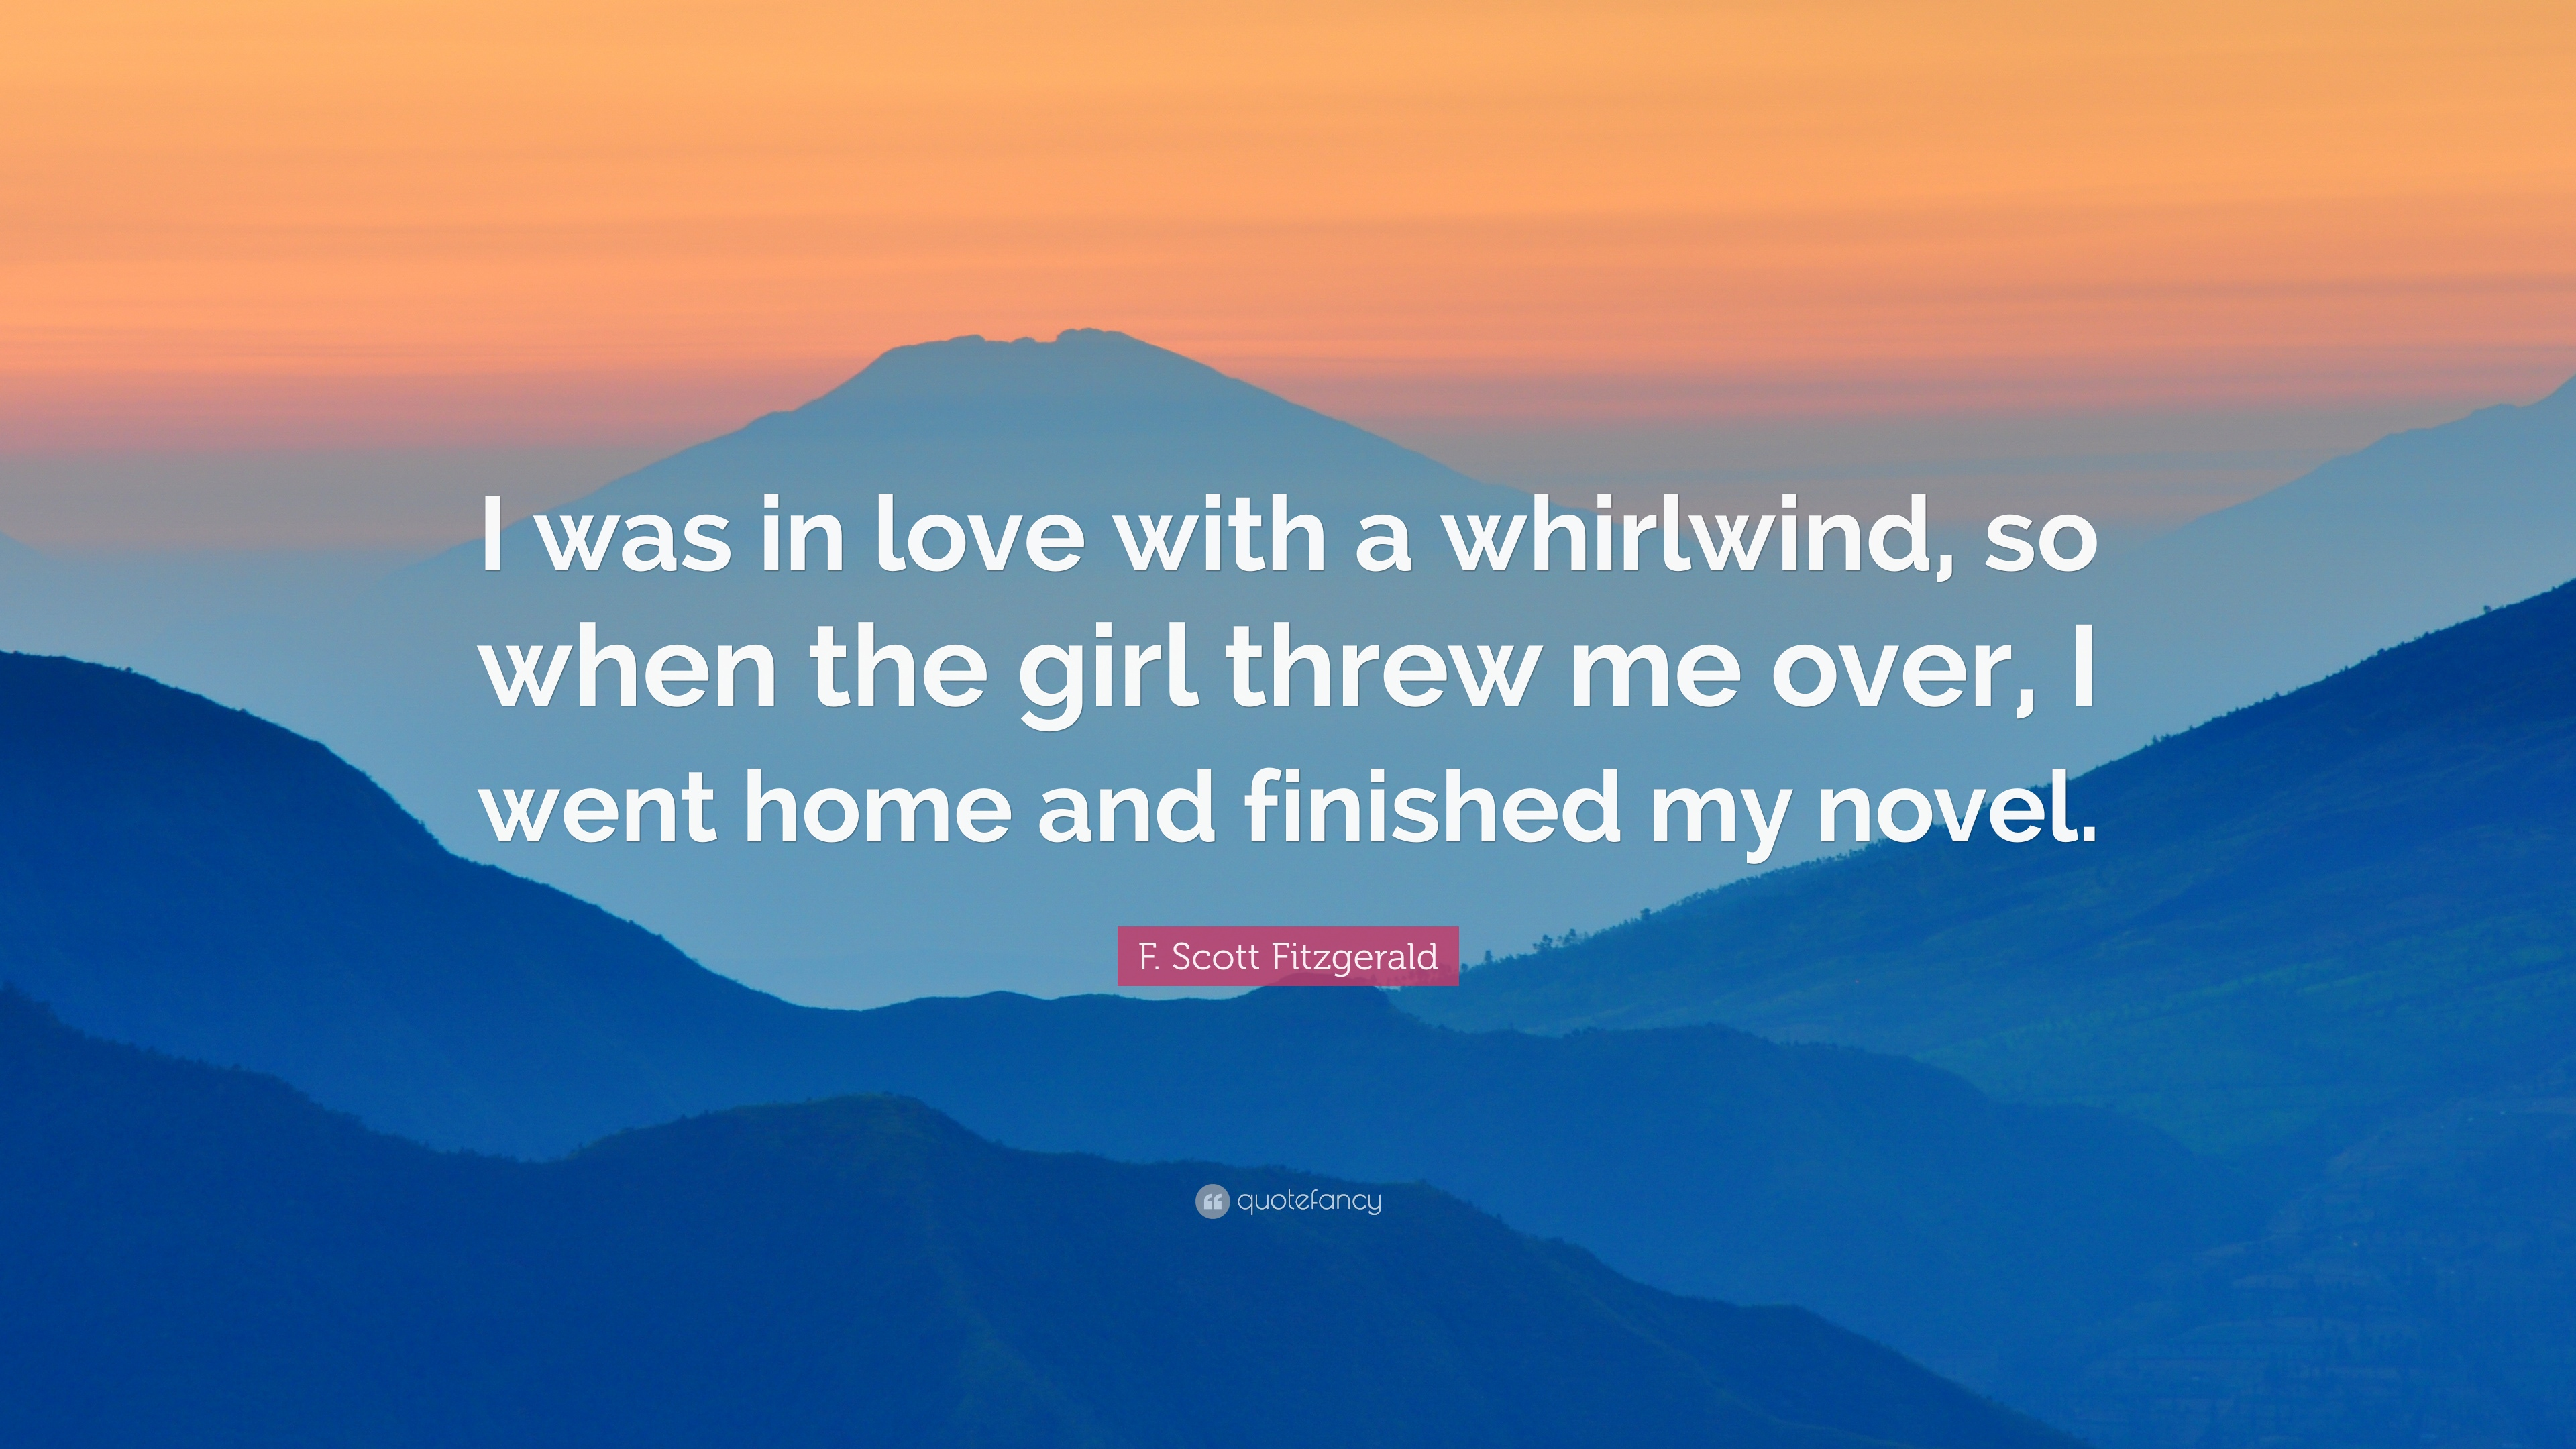 F Scott Fitzgerald Quote I Was In Love With A Whirlwind So When The Girl Threw Me Over I Went Home And Finished My Novel 9 Wallpapers Quotefancy